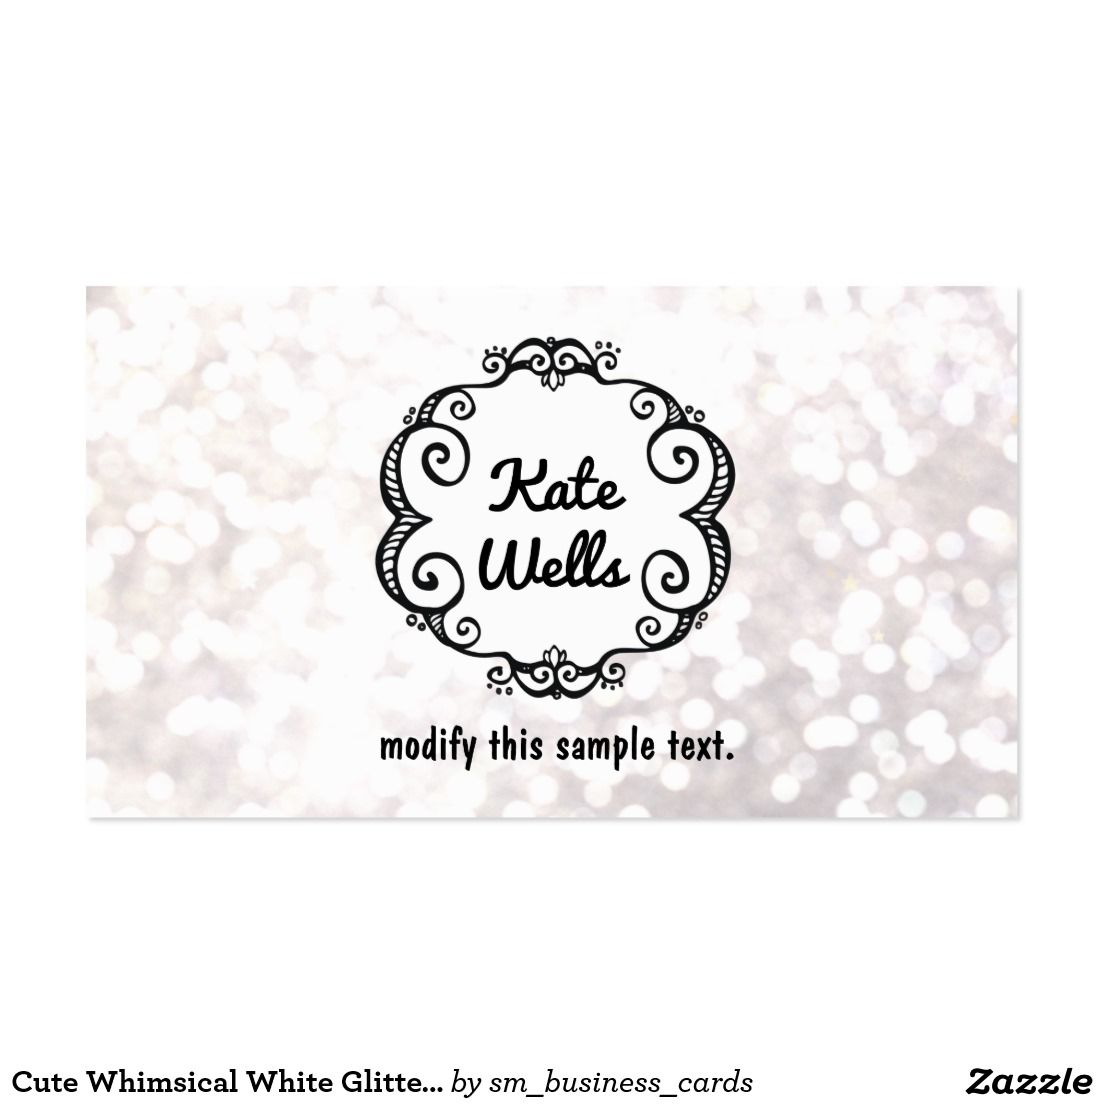 Cute Whimsical White Glitter Bokeh Business Card Great For Fashion